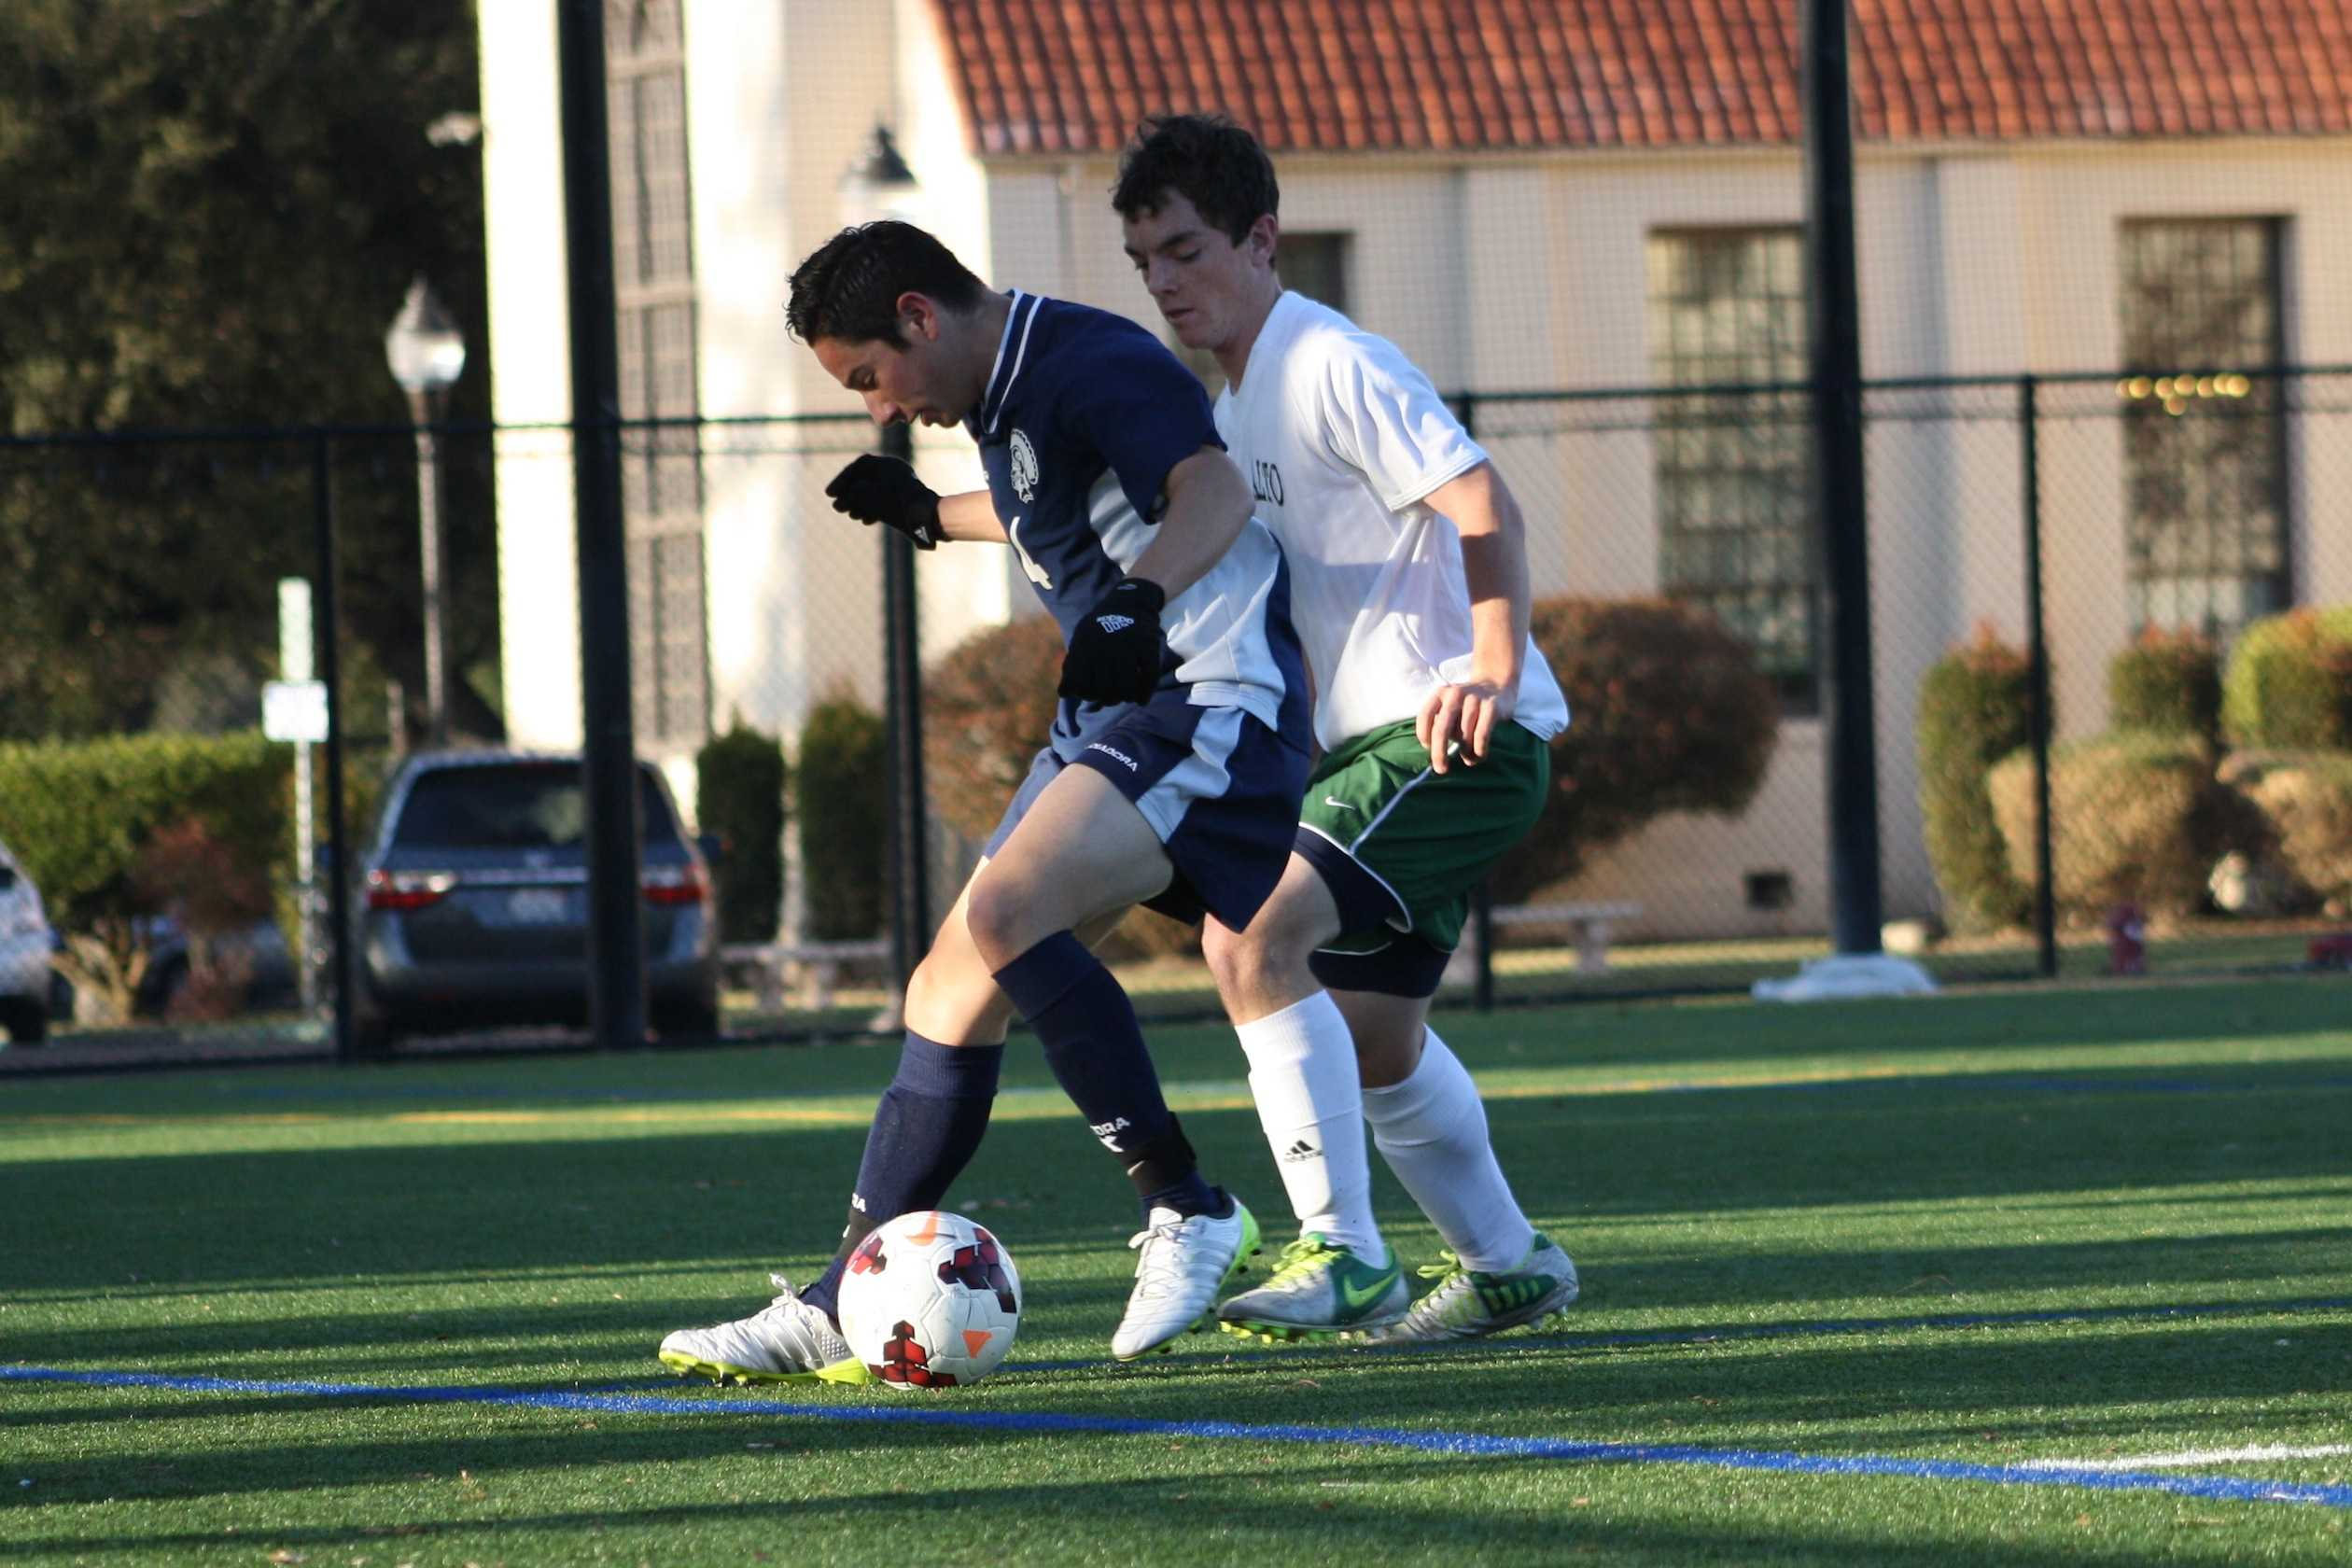 Preston Kuppe ('15) attempts to steal the ball from the Milpitas Trojans. The Vikings went on to tie the Trojans 1-1.